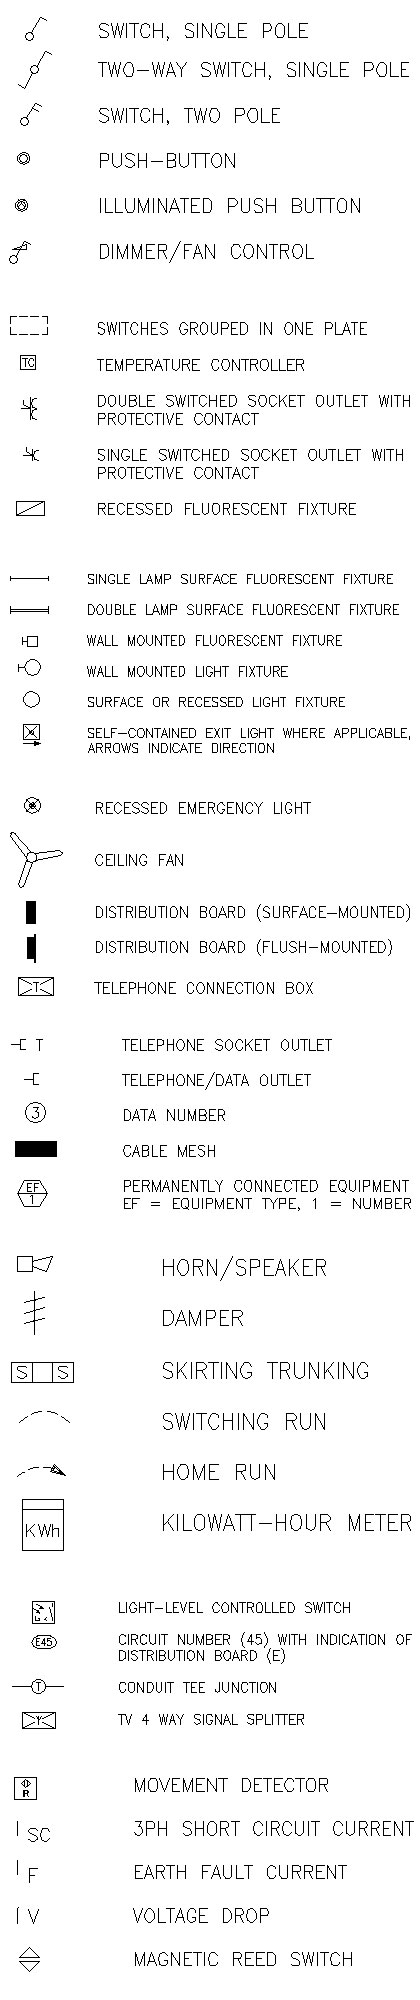 Cad Electrical Symbols Blocks Cad Electrical Drawings Free Download Cnclathing